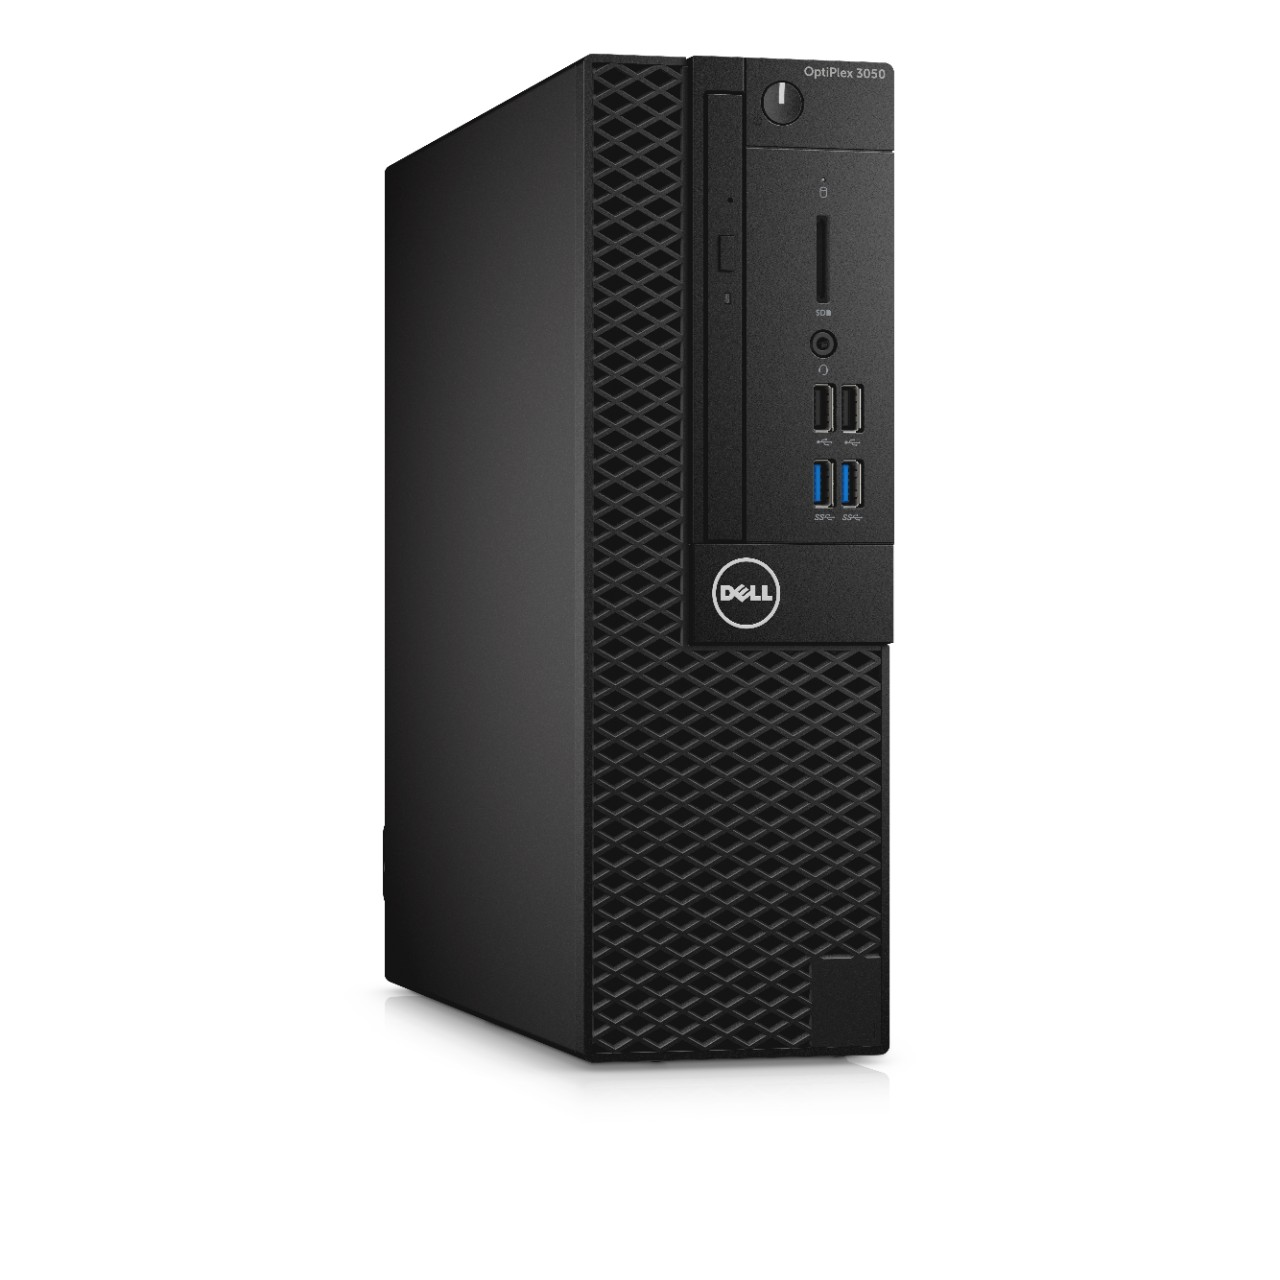 Dell PC Optiplex 3050 SF i5-7500/4G/500GB/DP/HDMI/DVD RW/W10P/3RNBD/Če